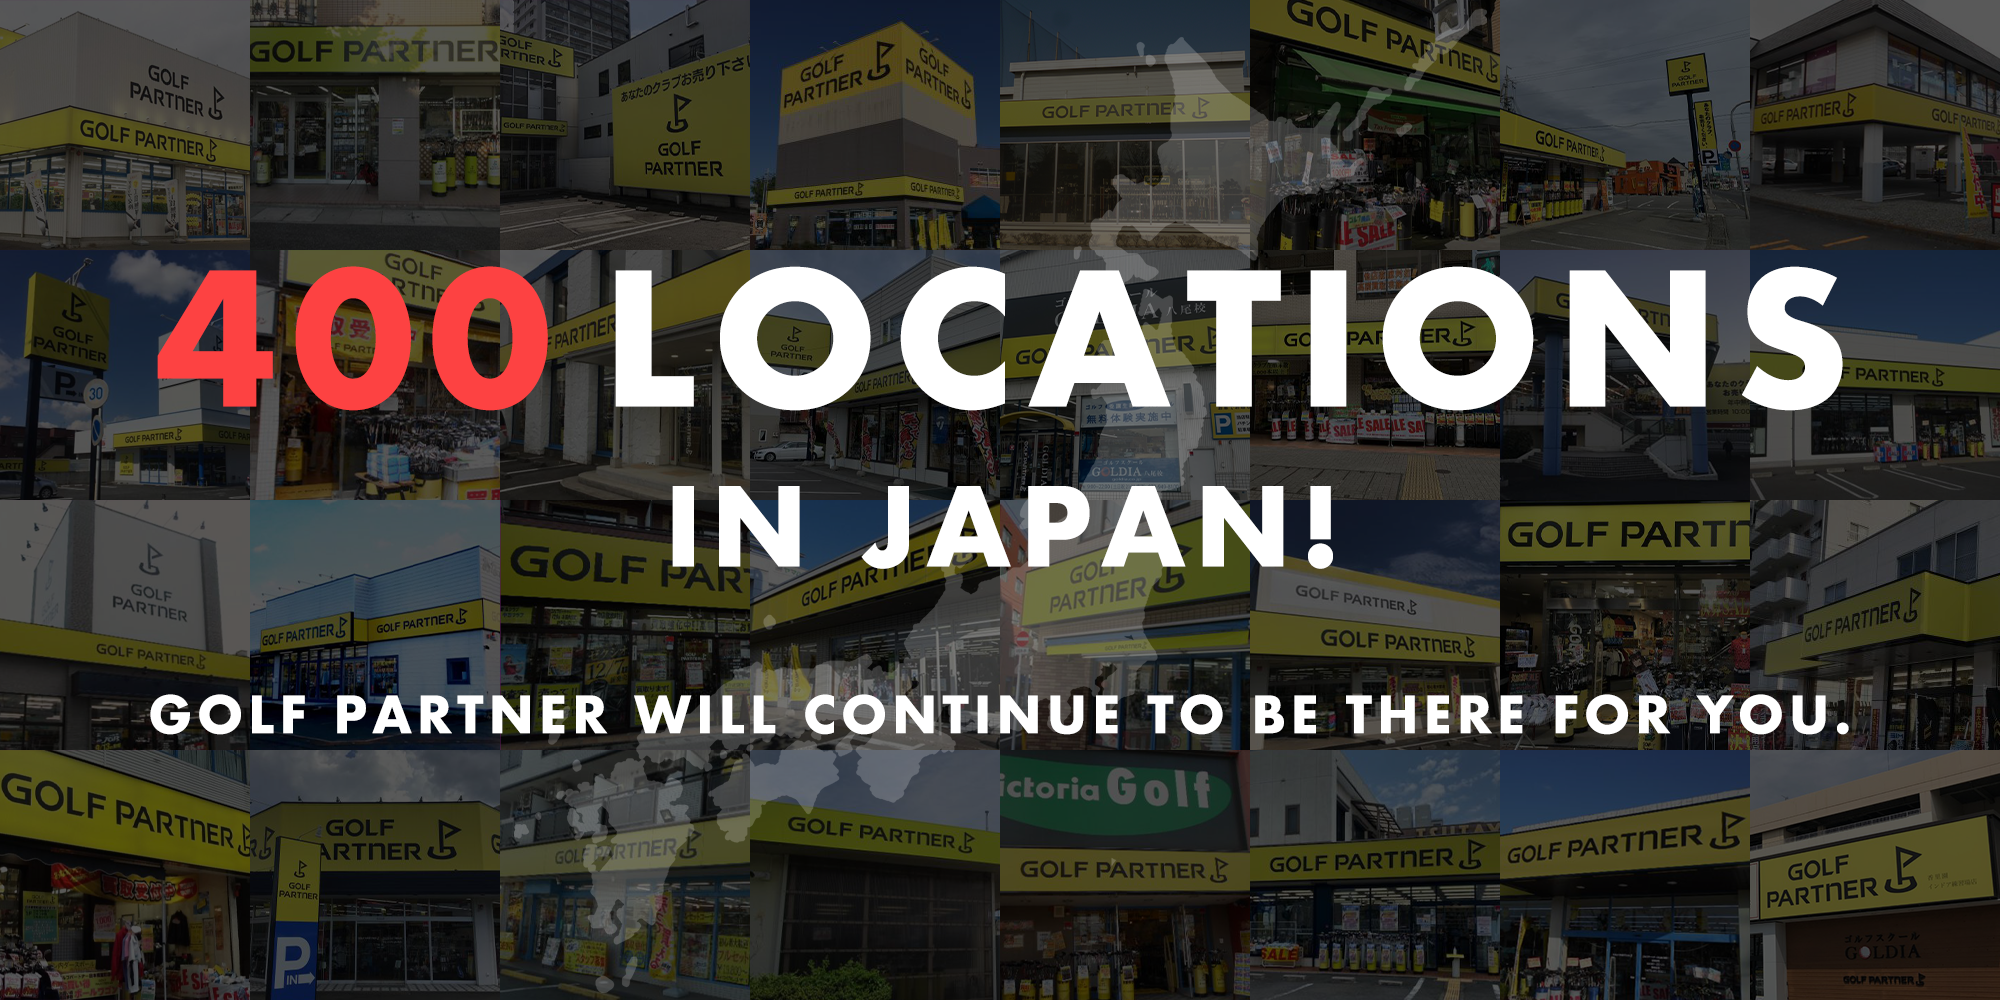 400locations in Japan! GOLF PARTNER will continue to be there for you.